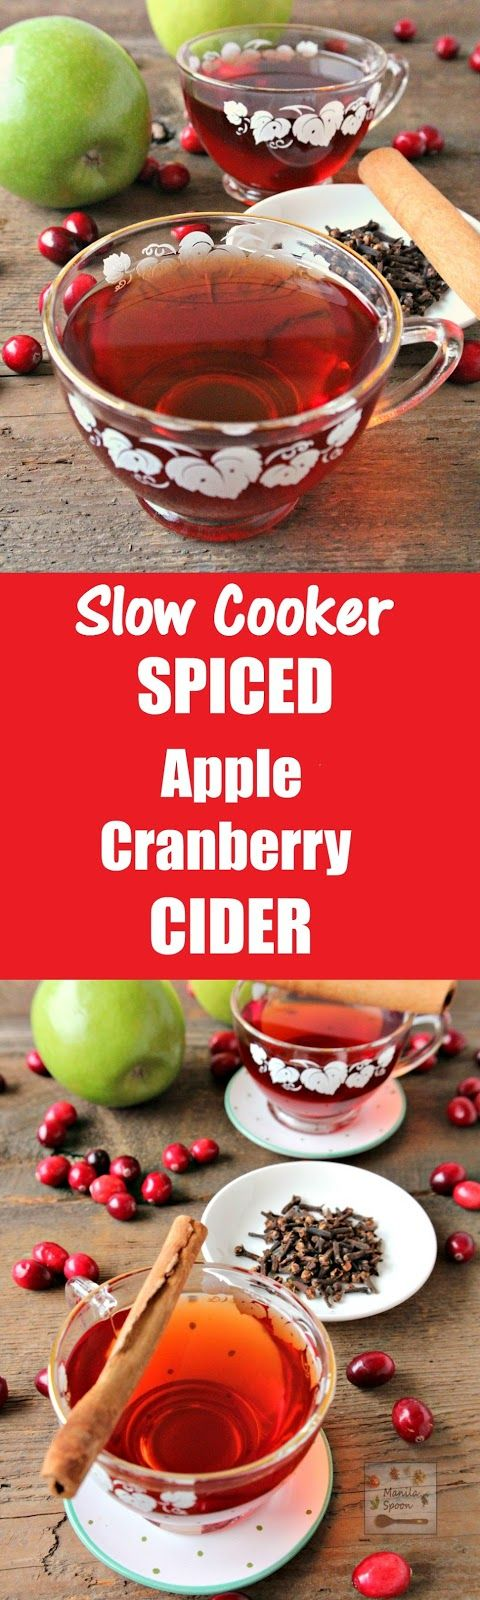 Cranberry Juice Slow Juicer : Spiced apples, Cranberries and Apples on Pinterest